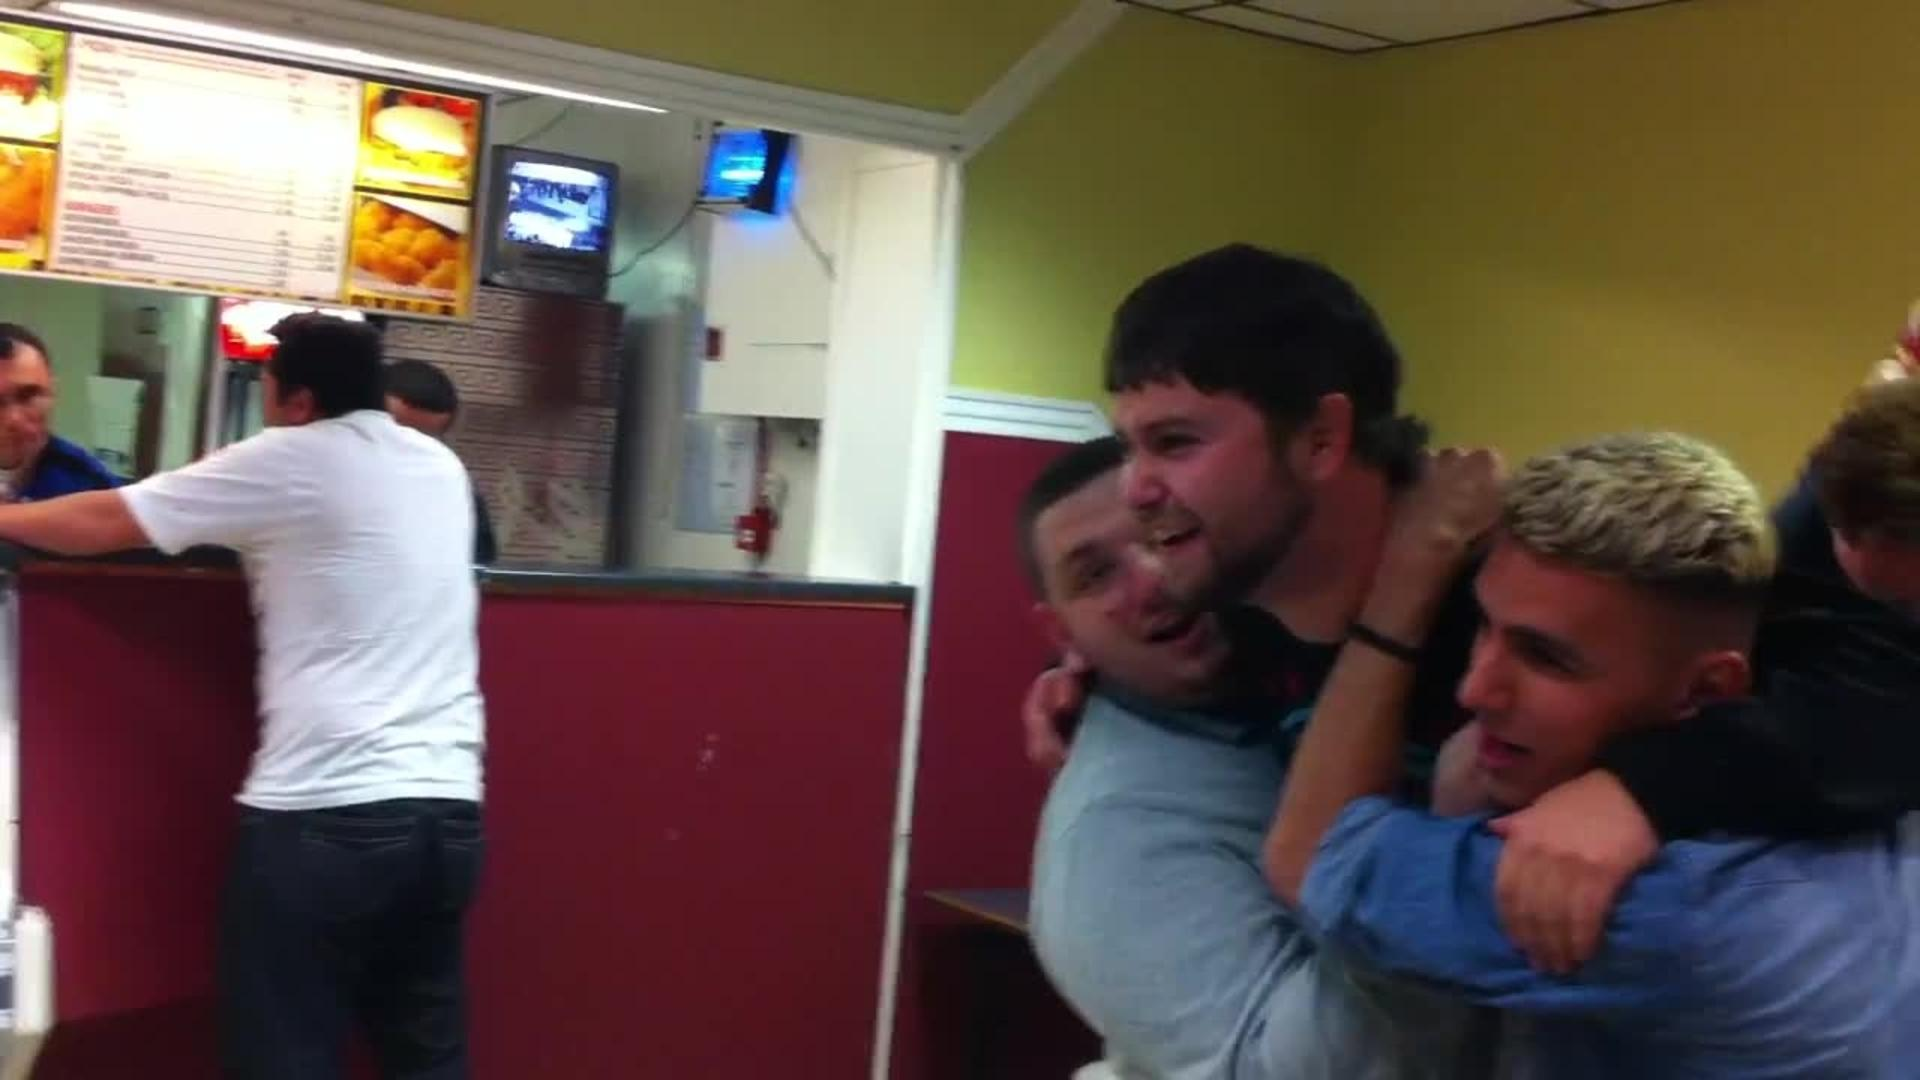 Guys Throw Friend Into Punching Bag Arcade